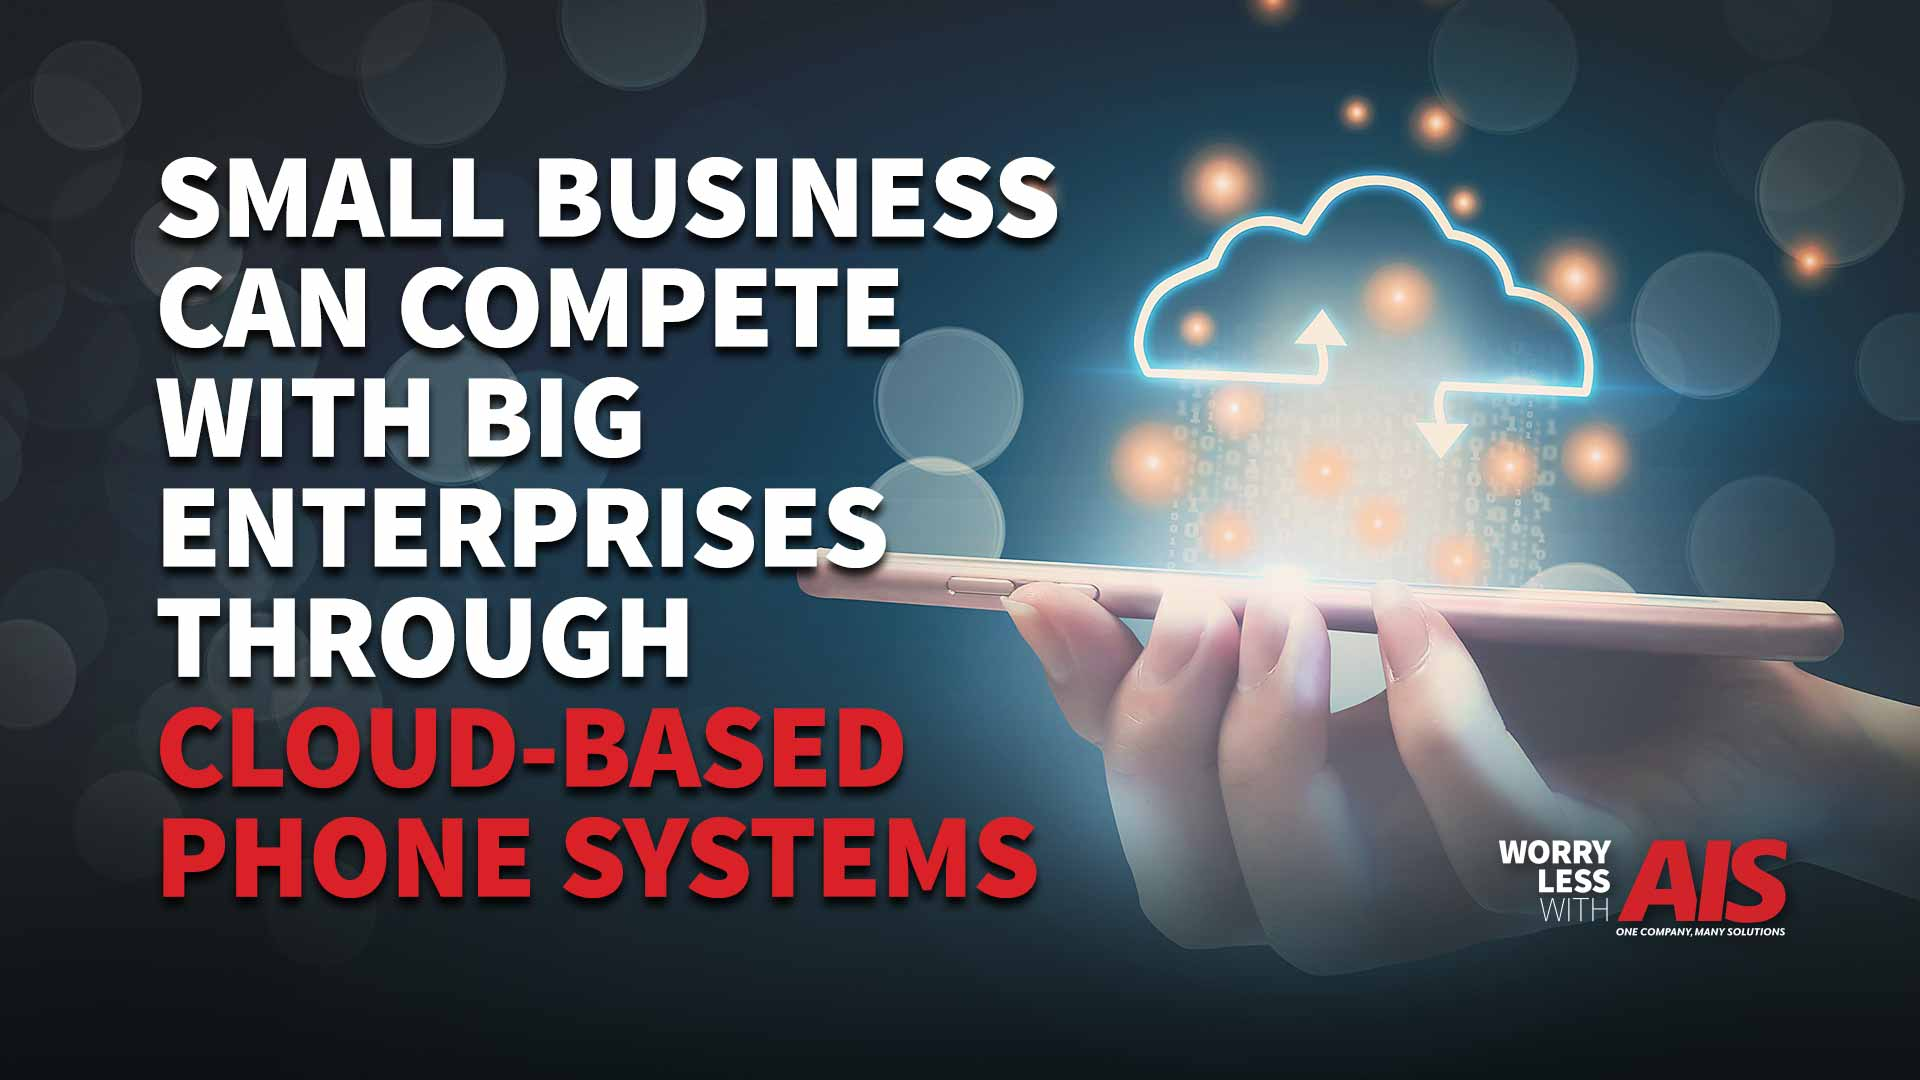 How Can Your Small Business (SMB) Compete With Big Enterprises? Through A Cloud-based Phone System